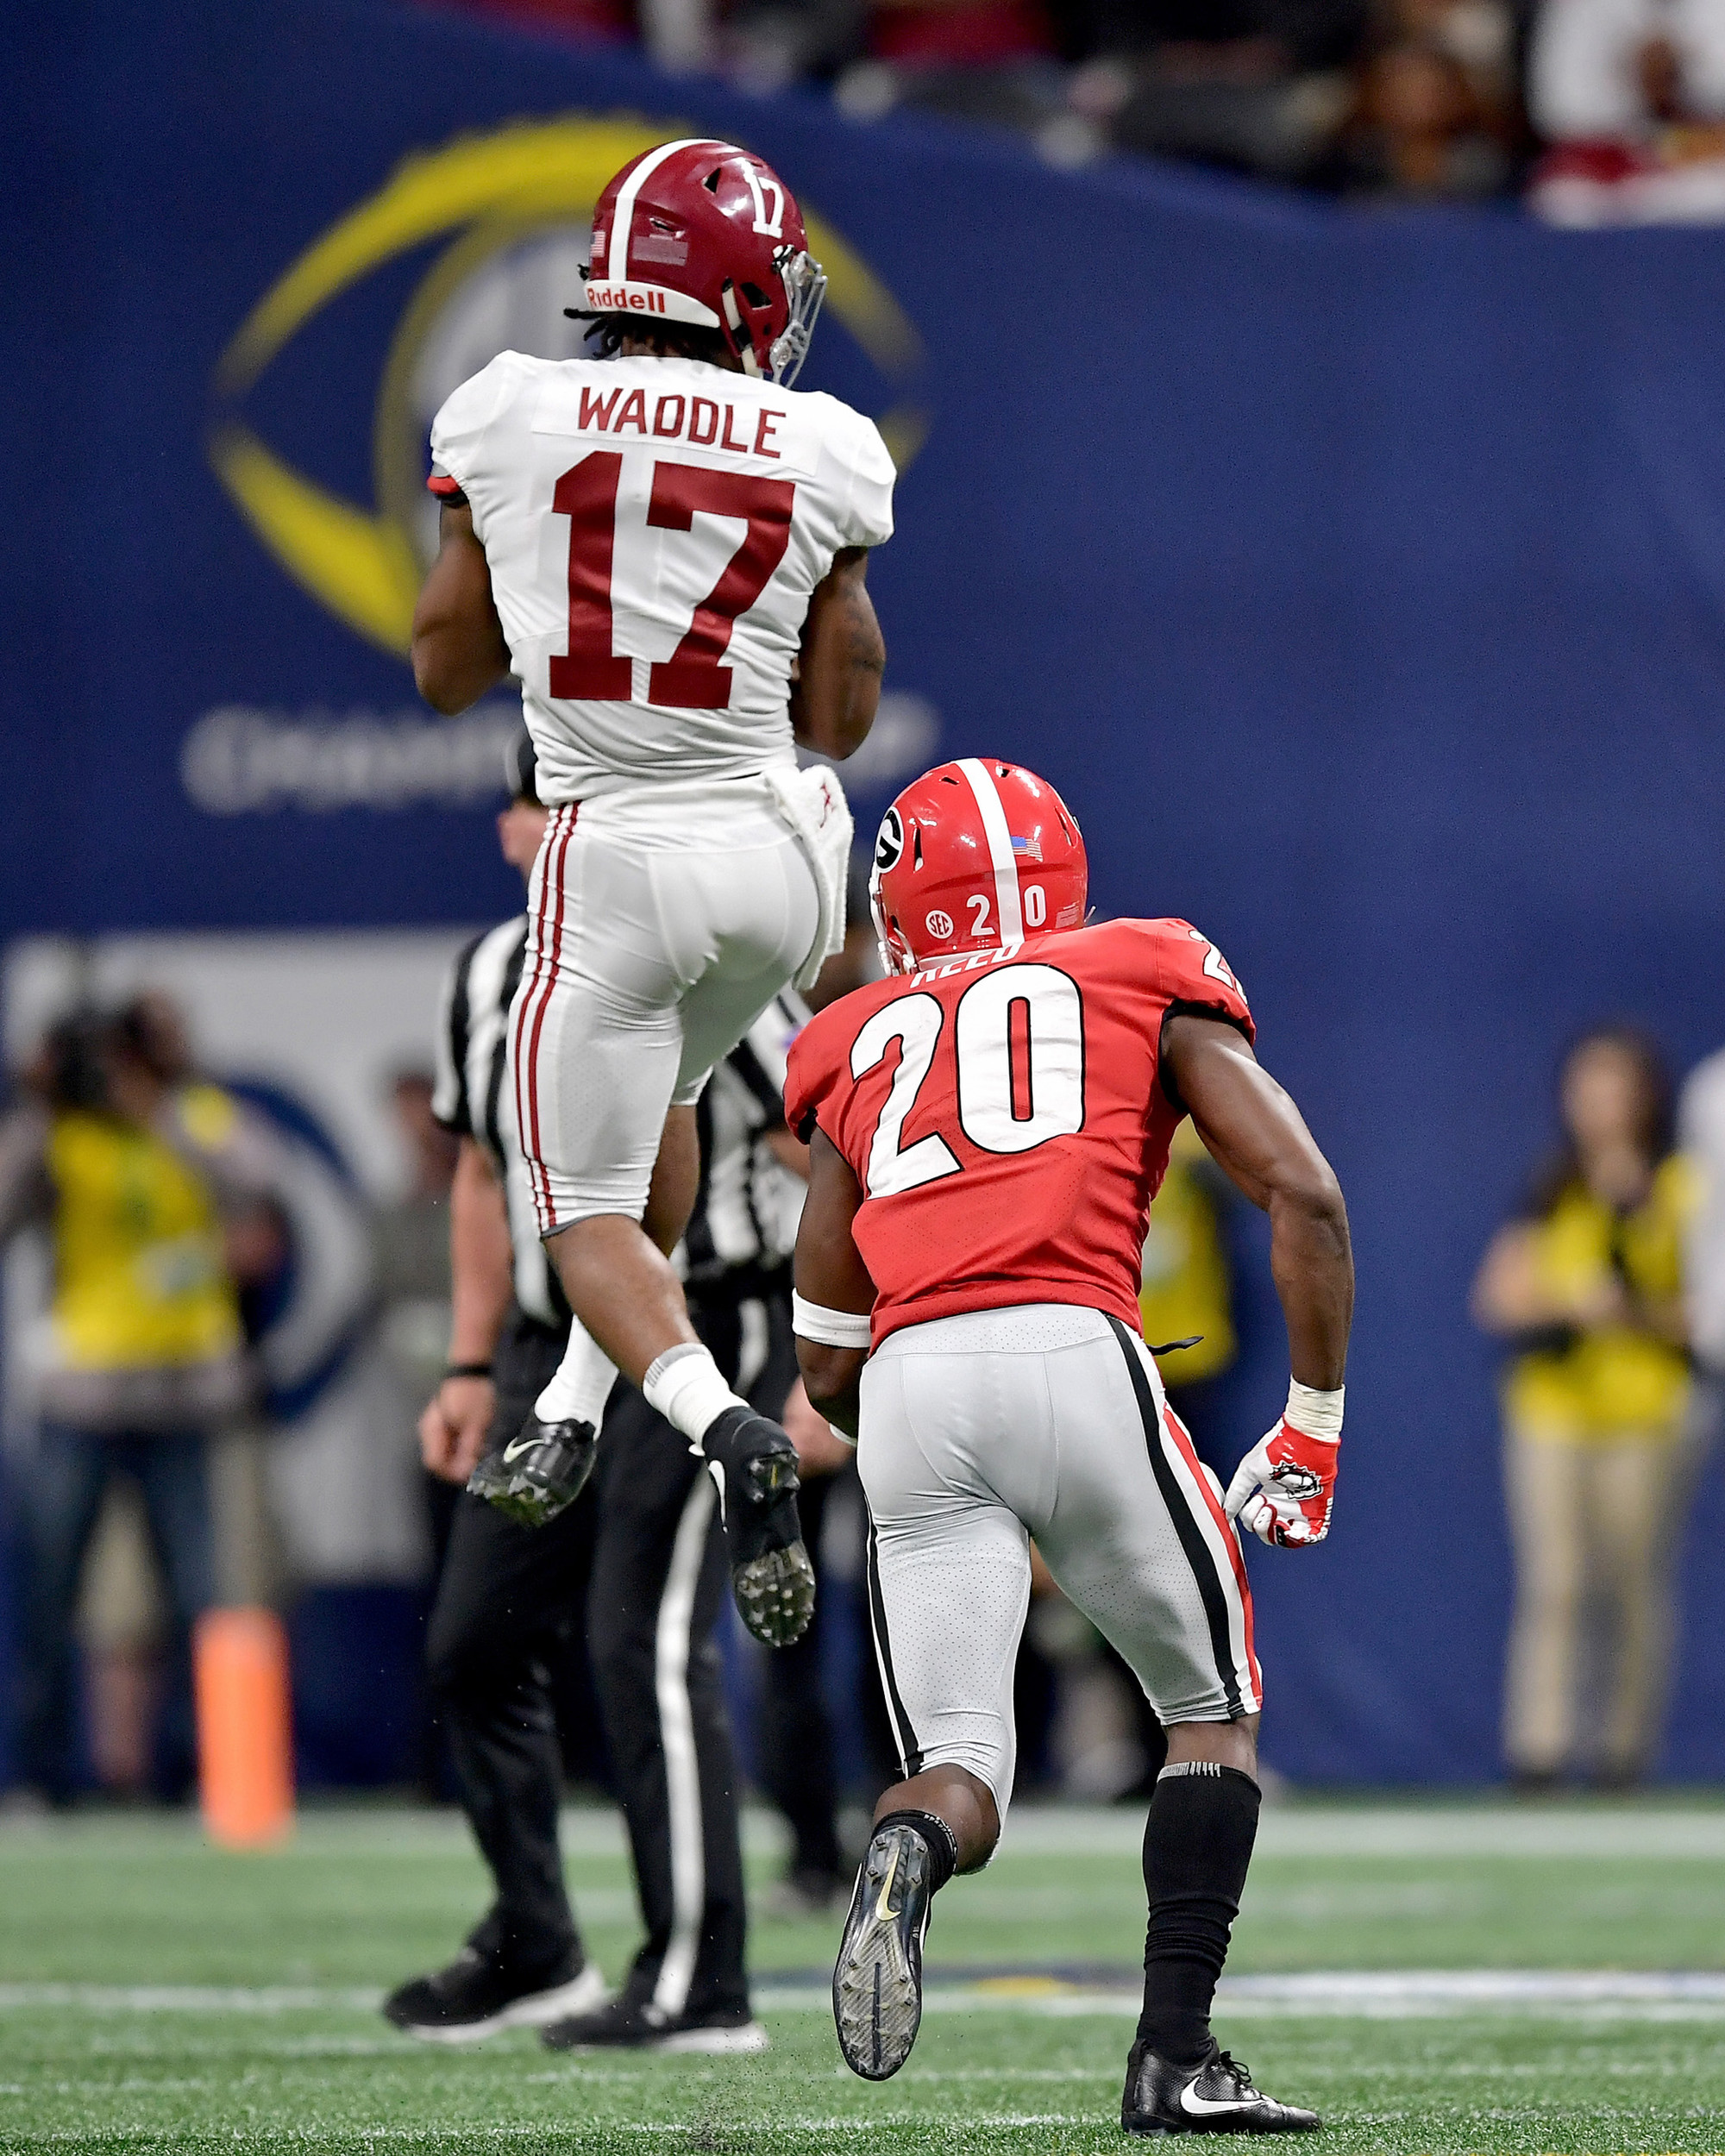 Alabama Crimson Tide wide receiver Jaylen Waddle (17) leaps to make the catch during the second half of the 2018 SEC Championship football game against the Georgia Bulldogs at Mercedes-Benz Stadium in Atlanta, Ga., on Dec. 1, 2018. Alabama wins 35-28. (Photo by Lee Walls)